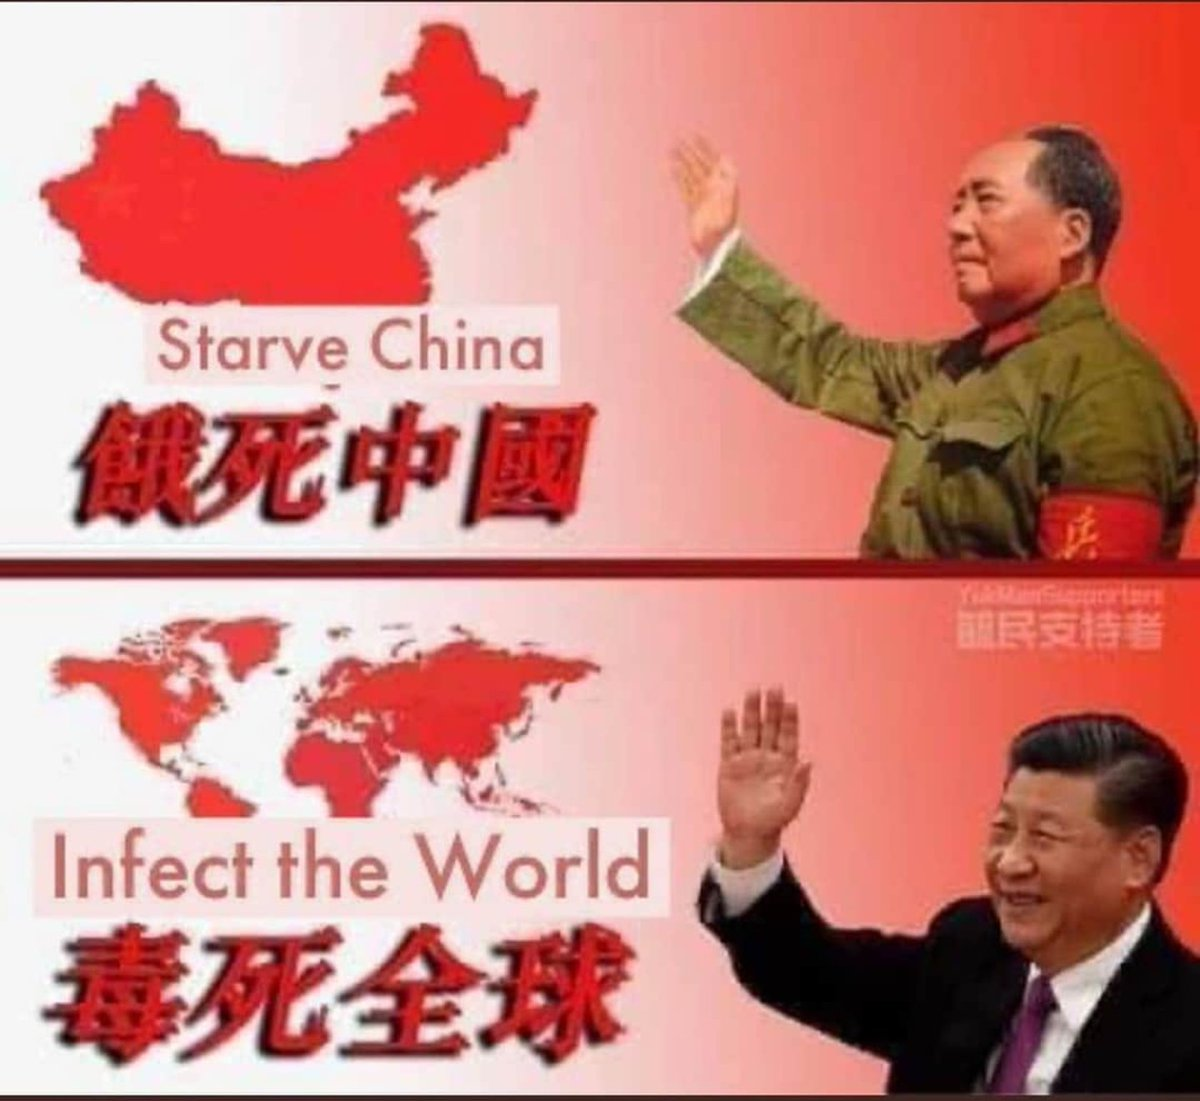 'One Road,' 'Walking On Two Legs,' and other CCP stupidities from the time of Mao are obsolete. What's real is the conditions in George Orwell's 'Animal Farm:' 'Some are more equal than others.' Life in China is a propped-up caricature of socialism with a human face. #Chinazi https://t.co/63V0DpARl8